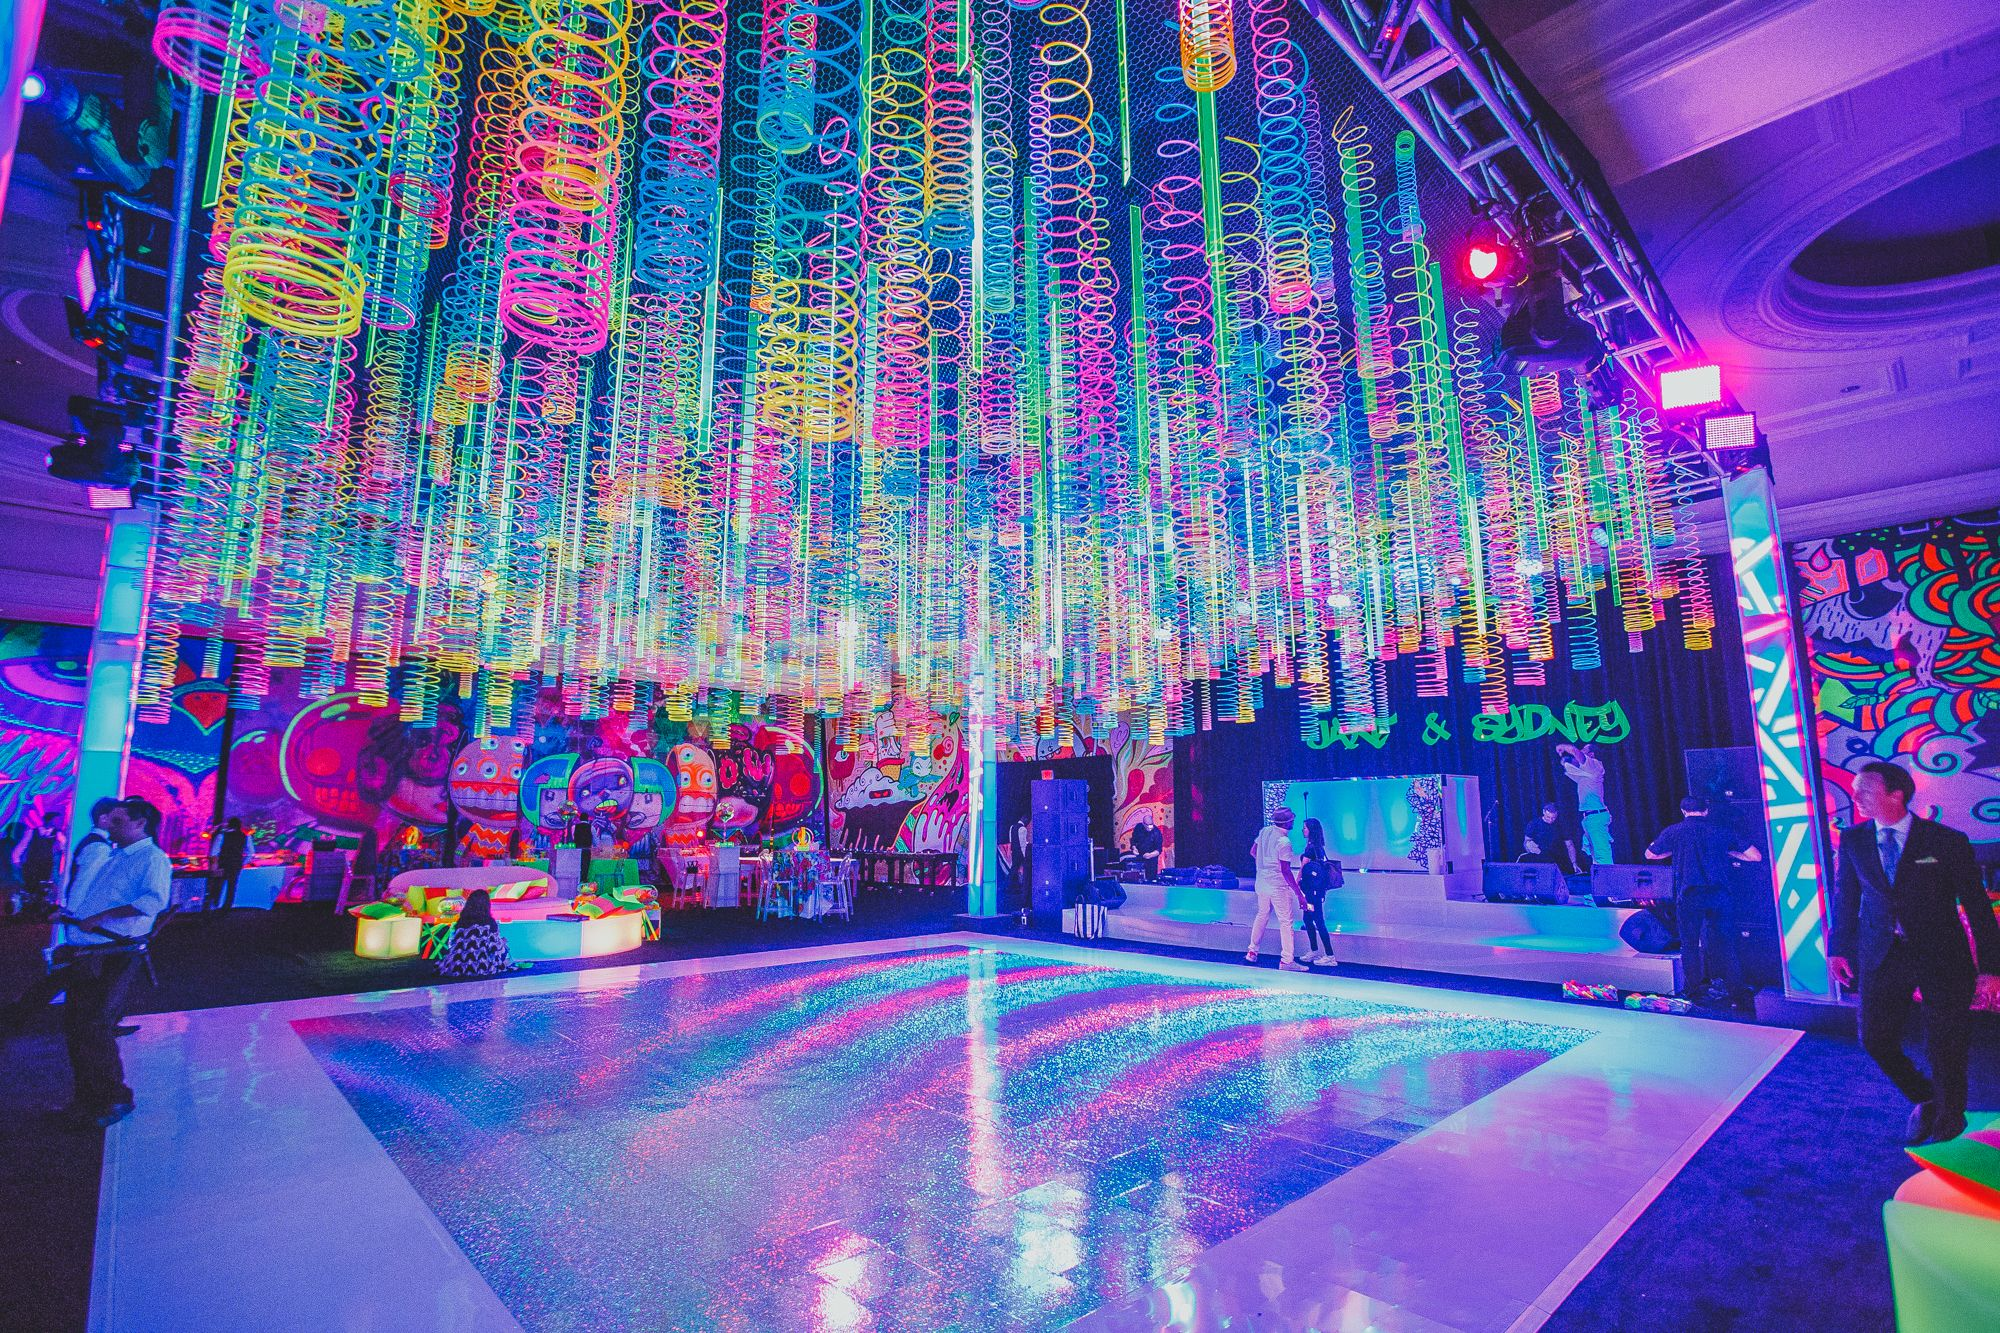 Tags bar and bat mitzvah event decor themes venues - Bar Bat Mitzvah Ideas Themes And Venues